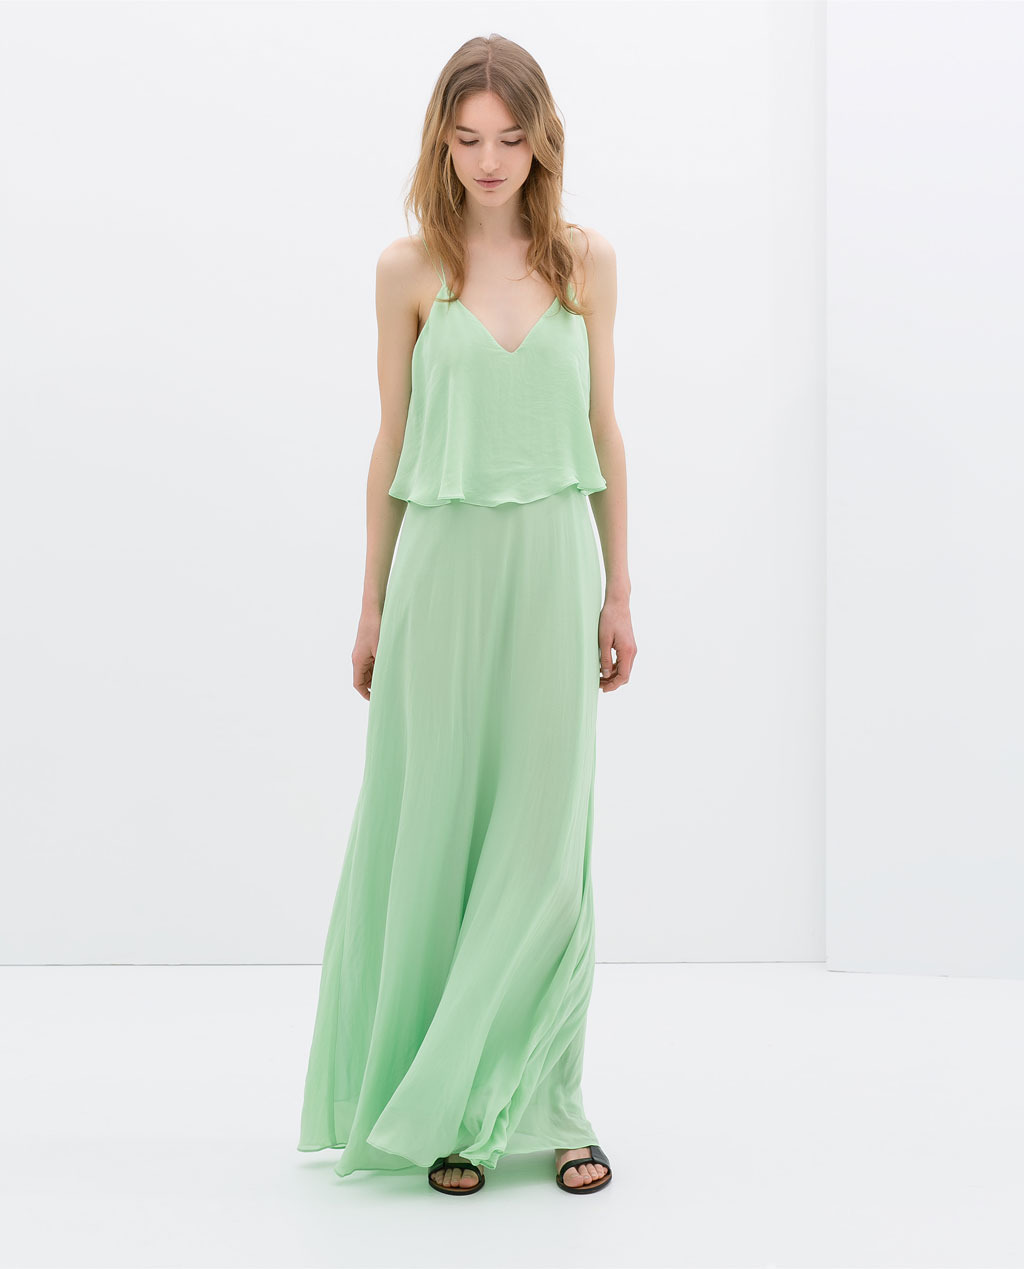 Maxi Dress With Low Cut Back - neckline: low v-neck; sleeve style: spaghetti straps; fit: loose; pattern: plain; style: maxi dress; predominant colour: mint green; occasions: casual, evening, holiday; length: floor length; fibres: polyester/polyamide - 100%; sleeve length: sleeveless; texture group: sheer fabrics/chiffon/organza etc.; pattern type: fabric; trends: sorbet shades; season: s/s 2014